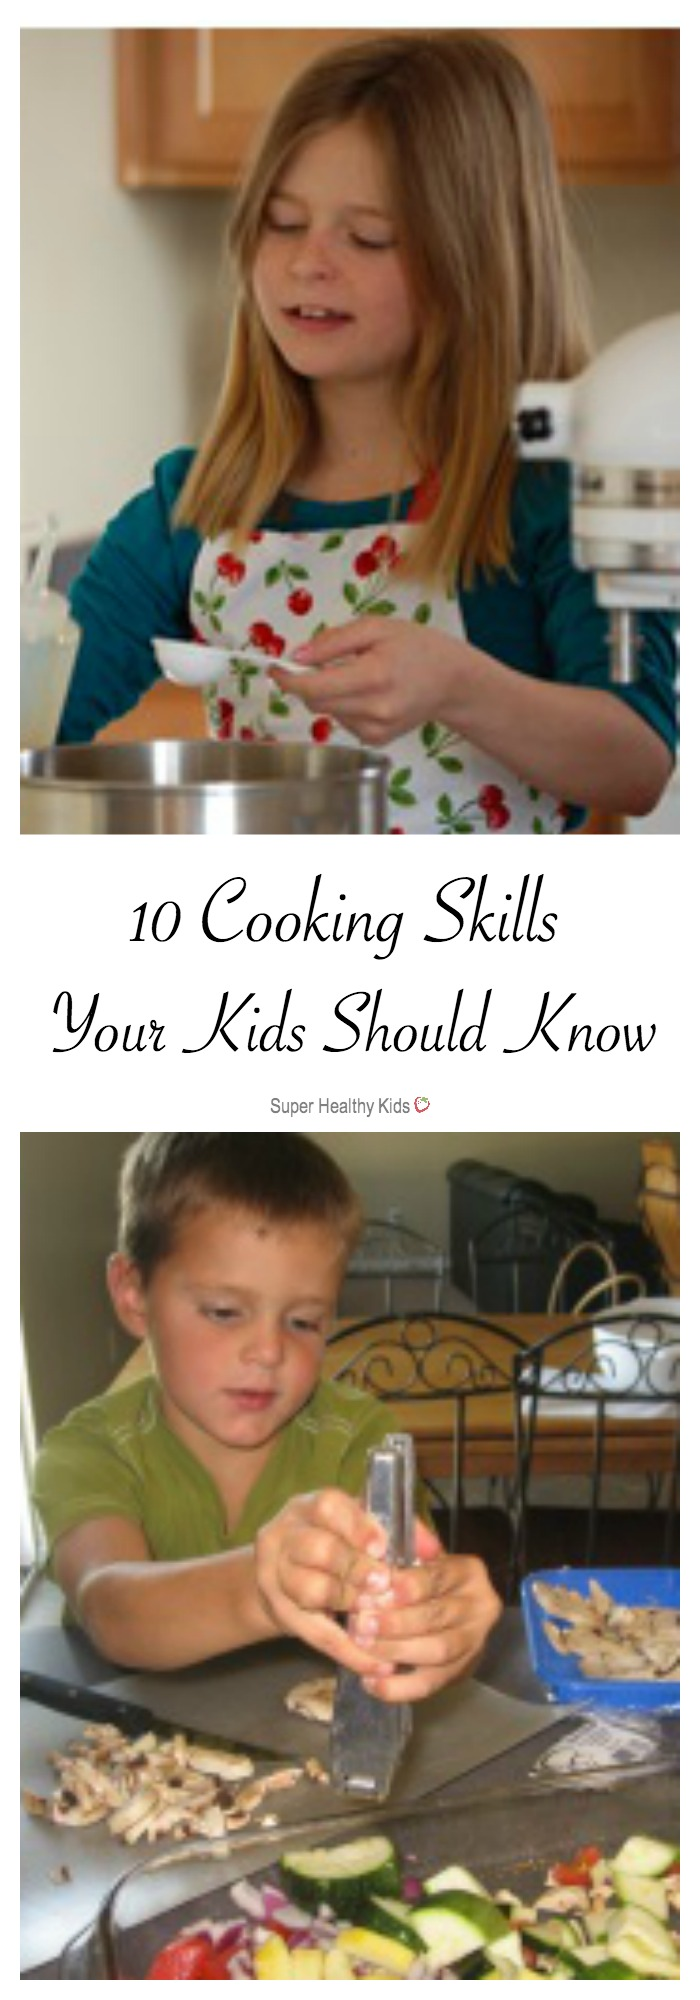 10 Cooking Skills Your Kids Should Know. Do your kids know how to do these 10 things in the kitchen? https://www.superhealthykids.com/10-cooking-skills-your-kids-should-know/